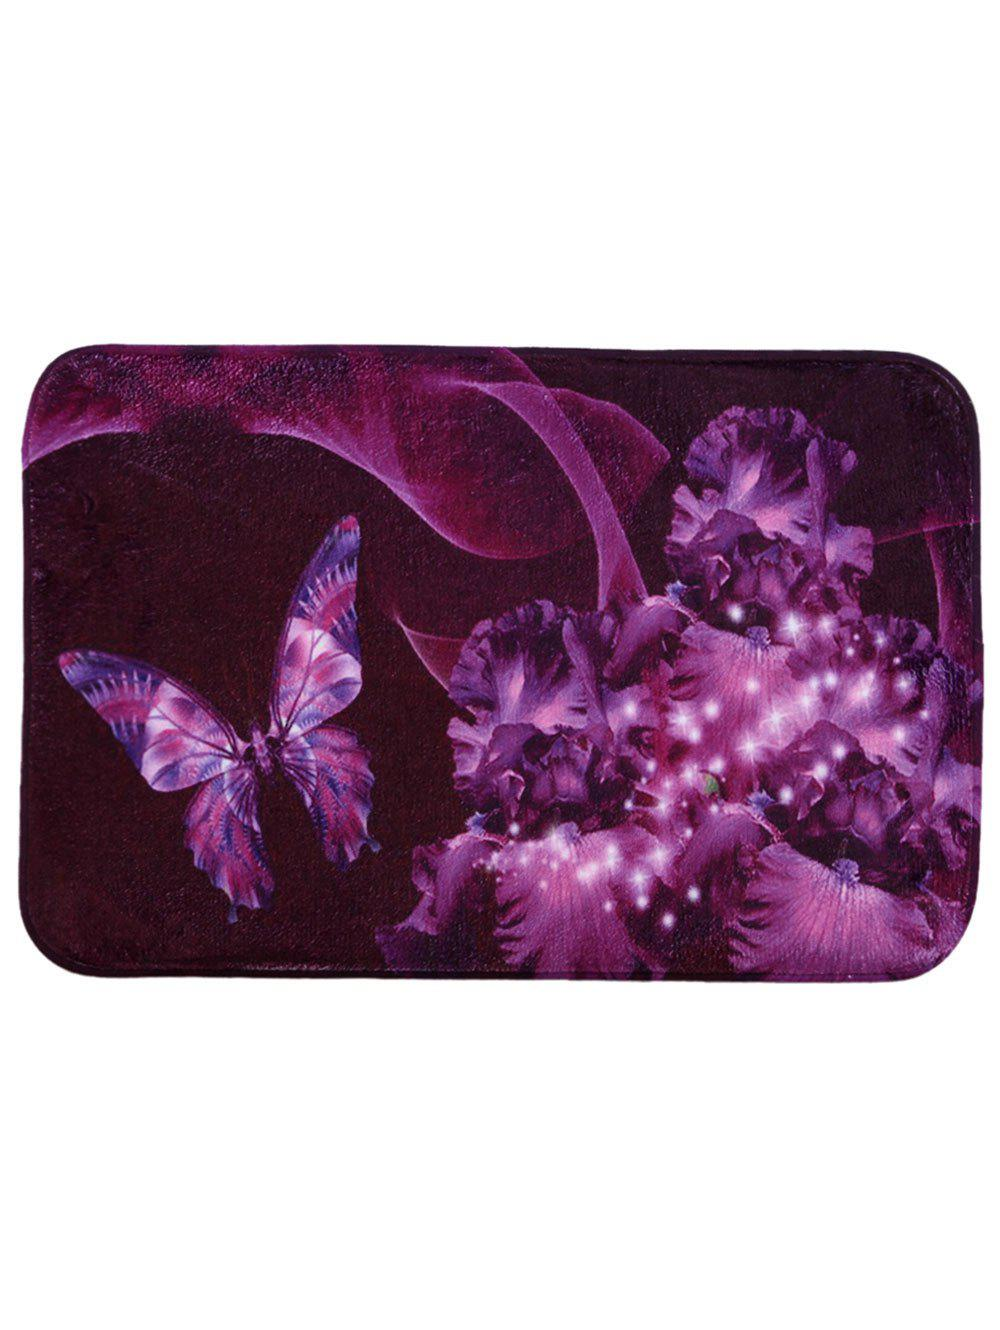 Soft Absorbent Mew Butterfly Area RugHOME<br><br>Size: 40*60CM; Color: VIOLET; Products Type: Bath rugs; Materials: Coral FLeece; Pattern: Animal; Style: Fashion; Shape: Rectangular; Weight: 0.4800kg; Package Contents: 1 x Rug;